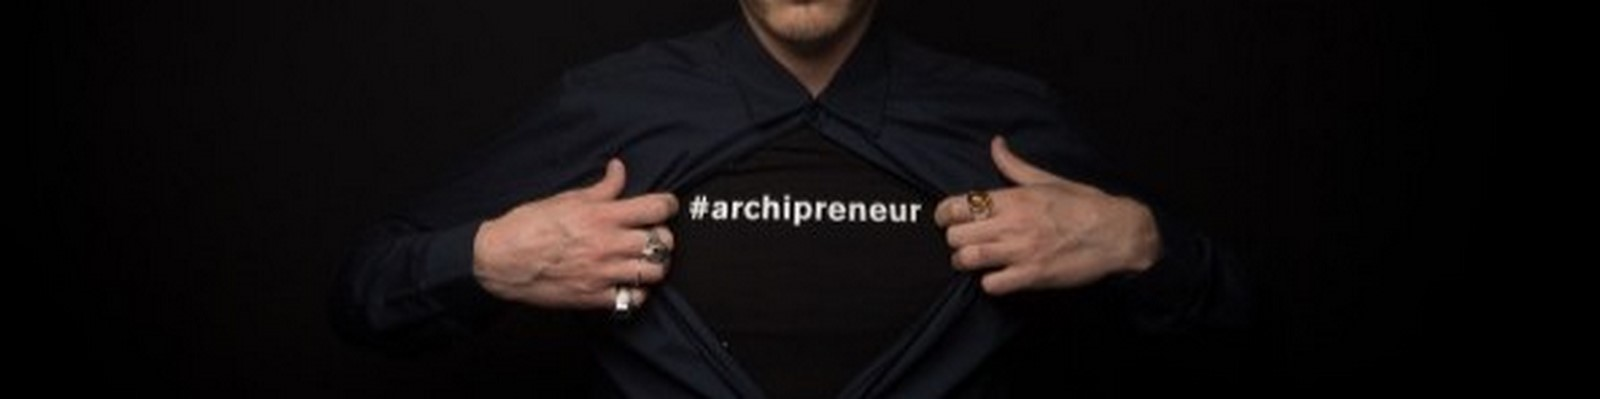 Youtube for Architects: Entrepreneurship in Architecture with Rodney Robles - Sheet3